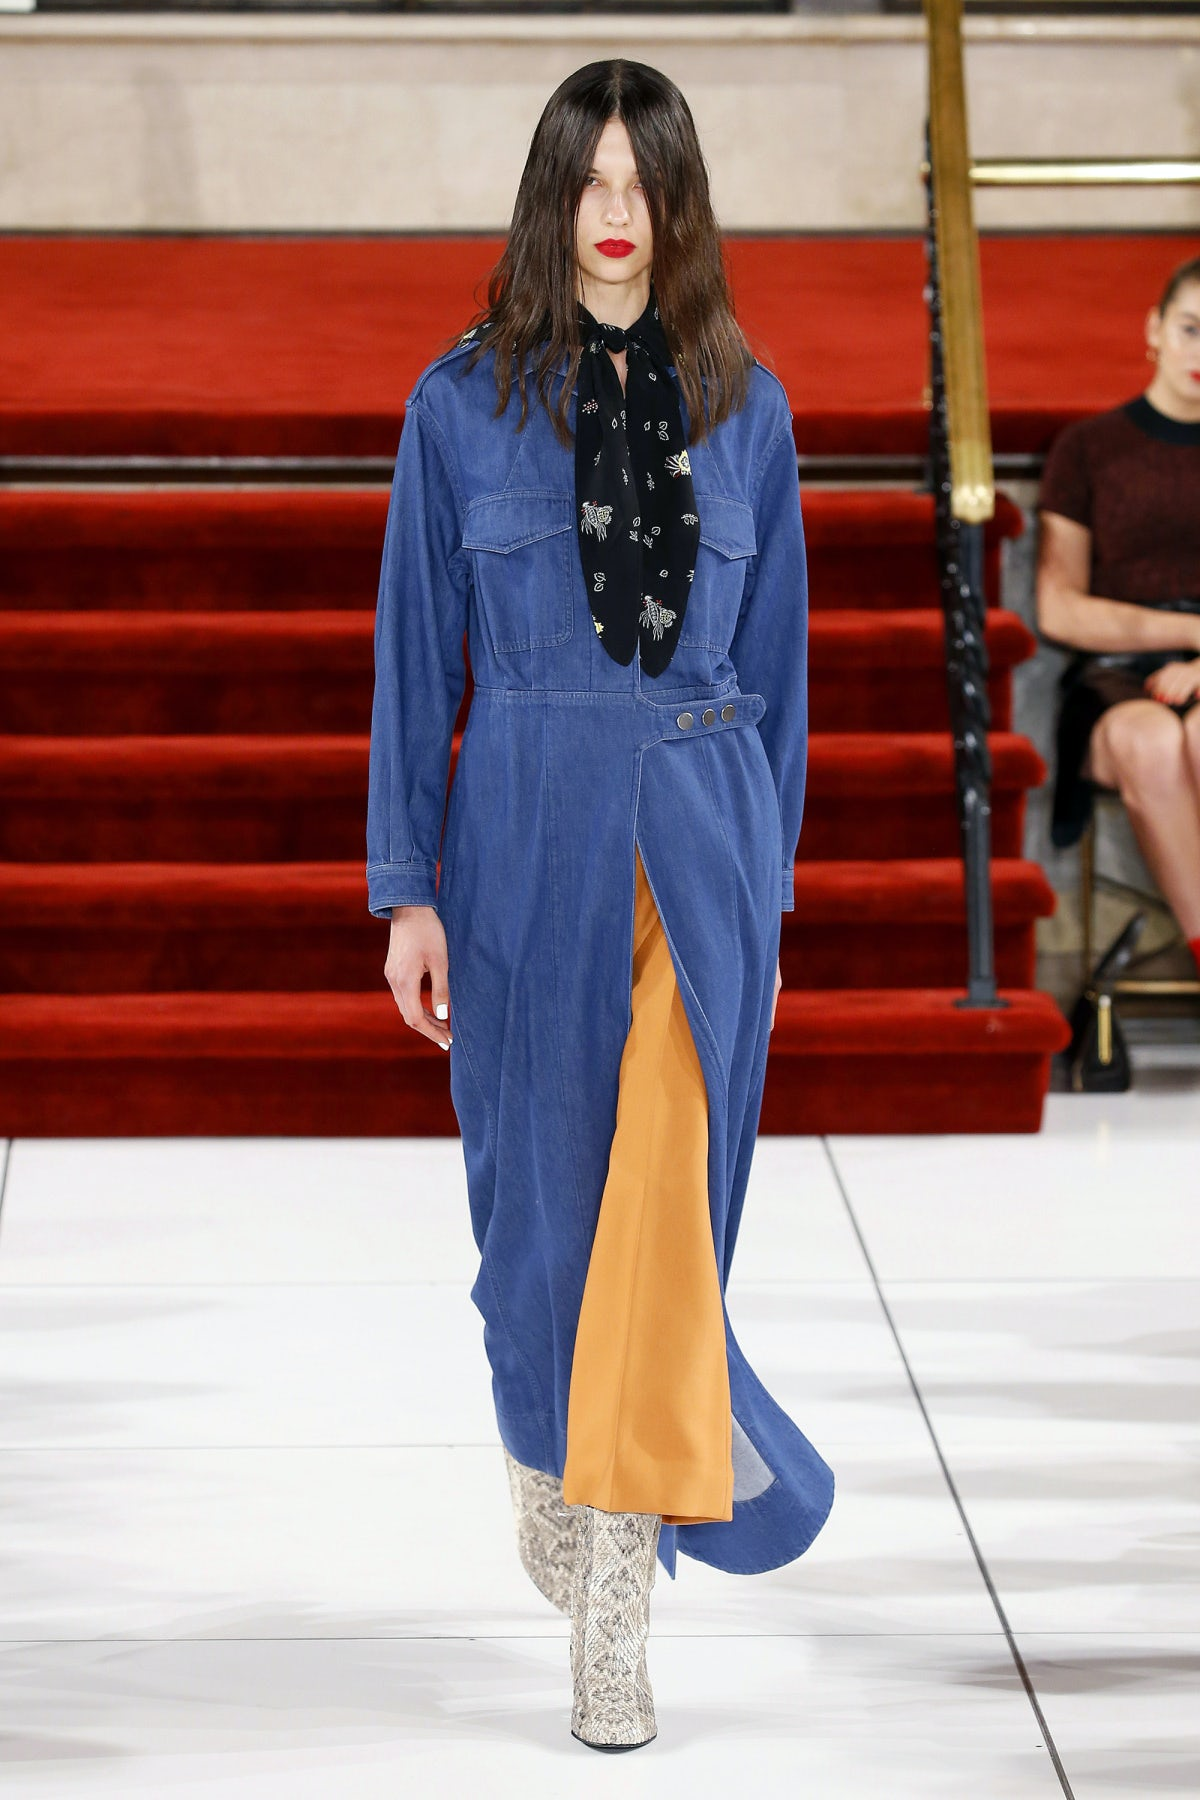 Creatures of the Wind Spring/Summer 2017 | Source: InDigital.tv